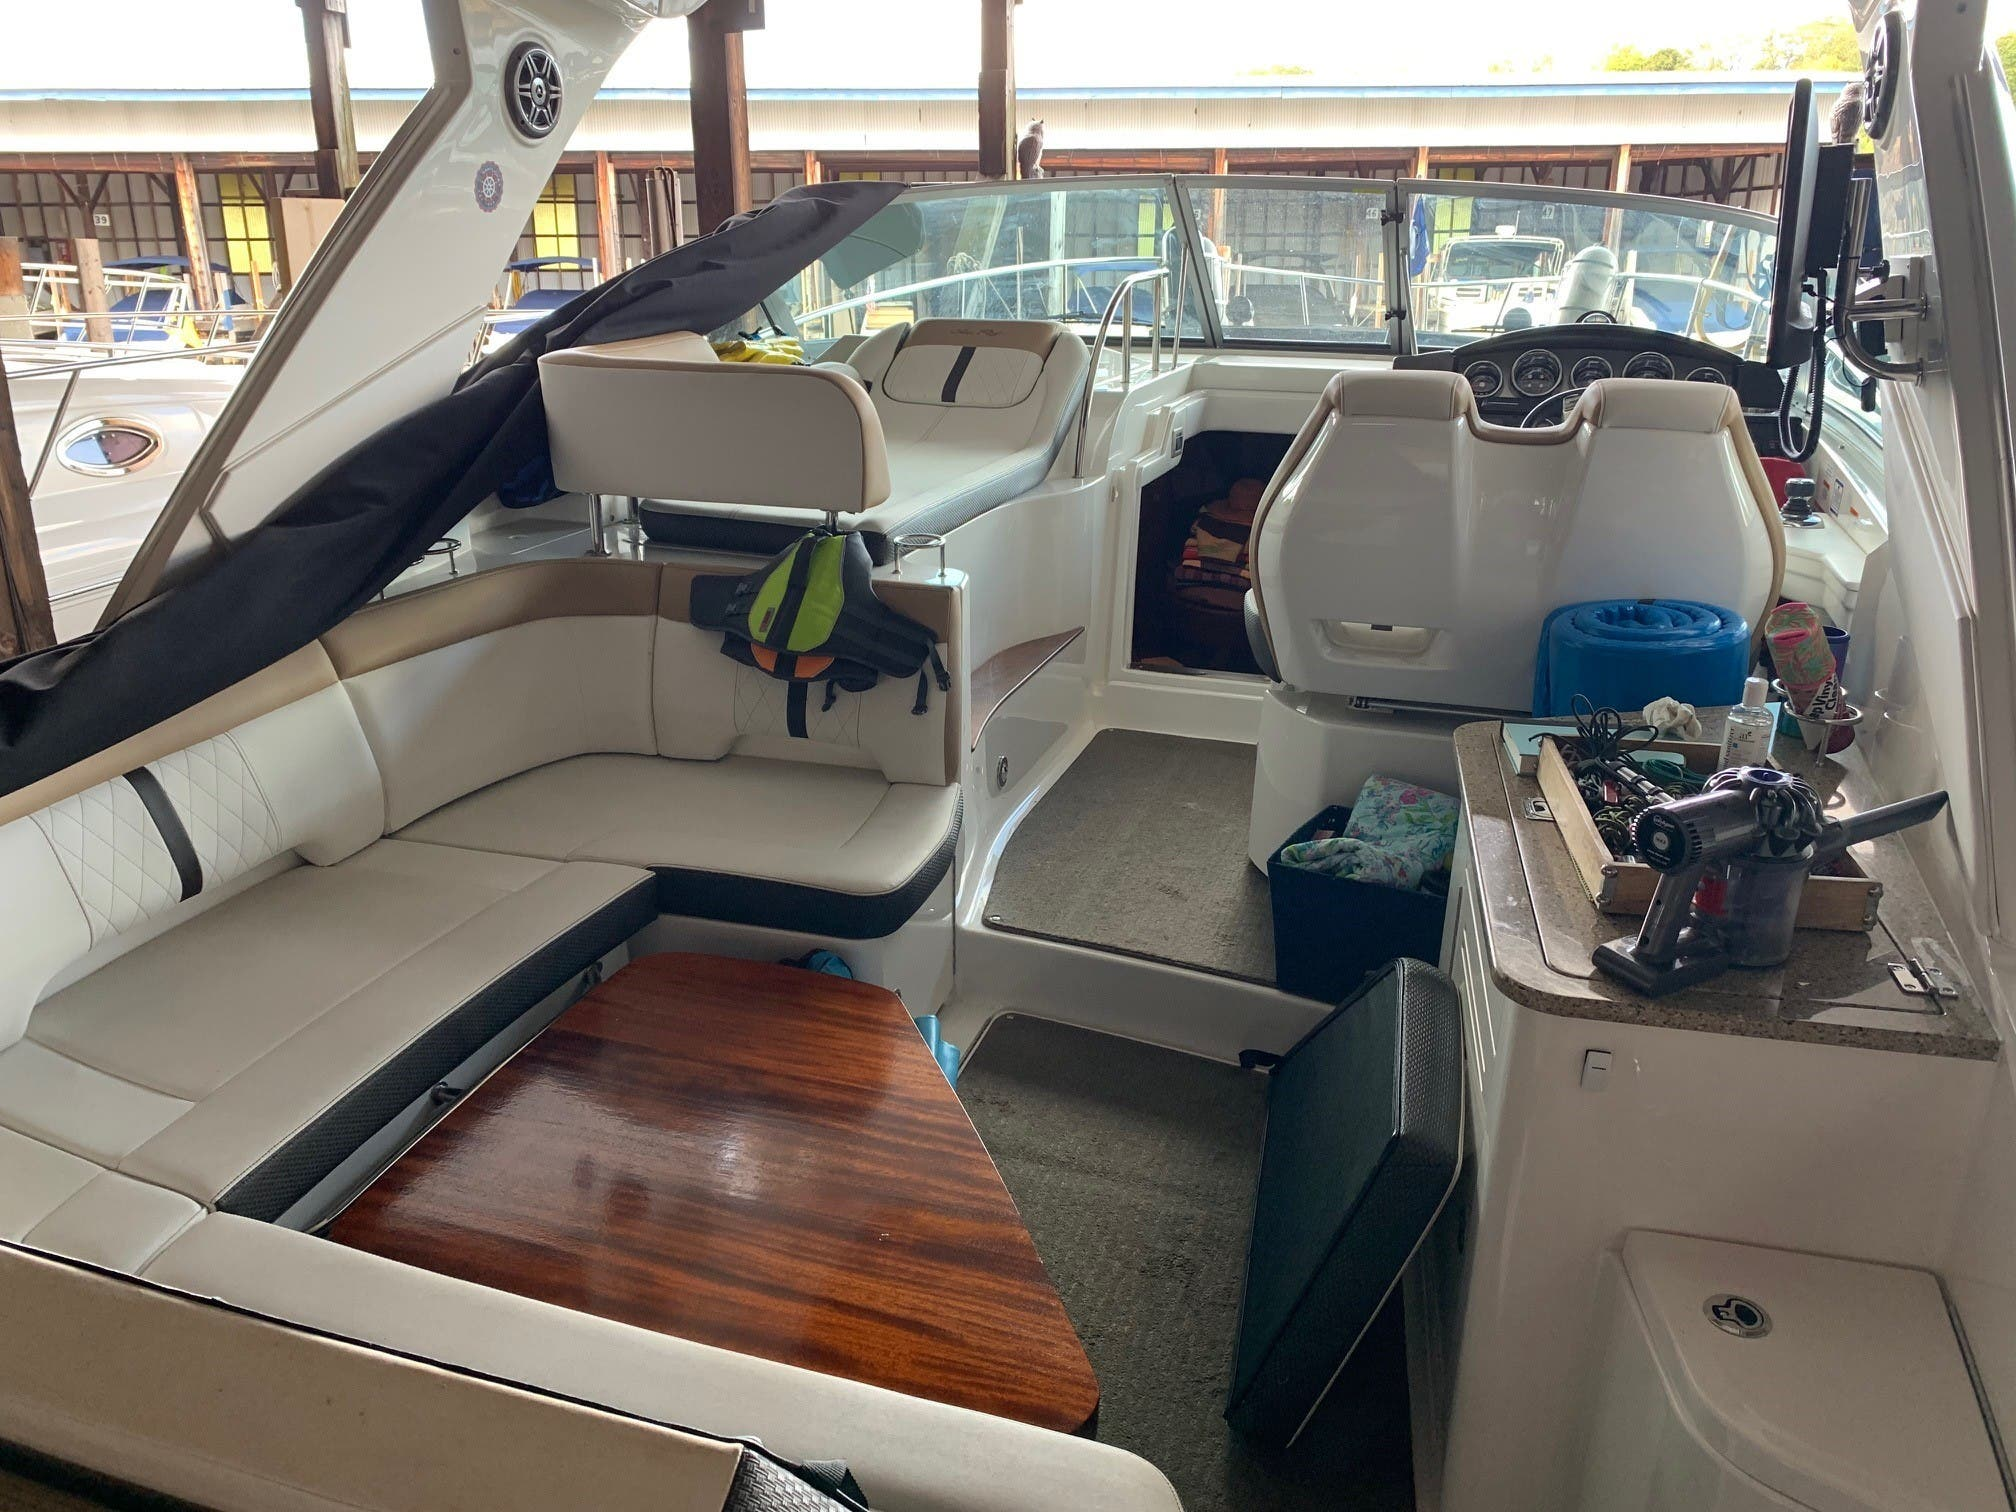 2016 Sea Ray boat for sale, model of the boat is 350 Sundancer & Image # 4 of 17